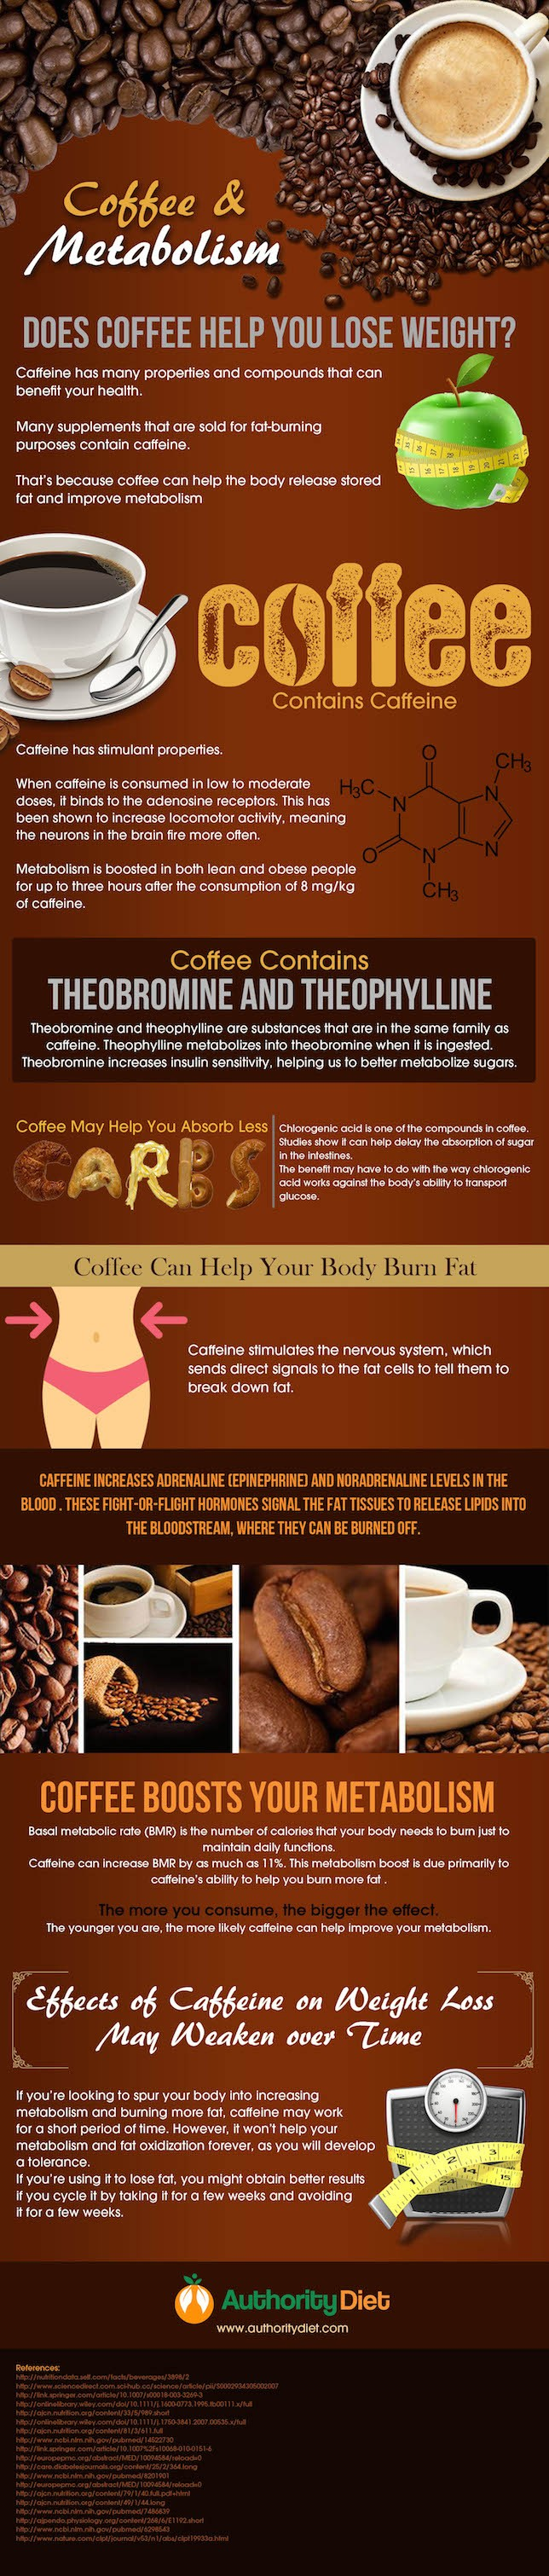 How Coffee Helps With Weight loss - Infographic